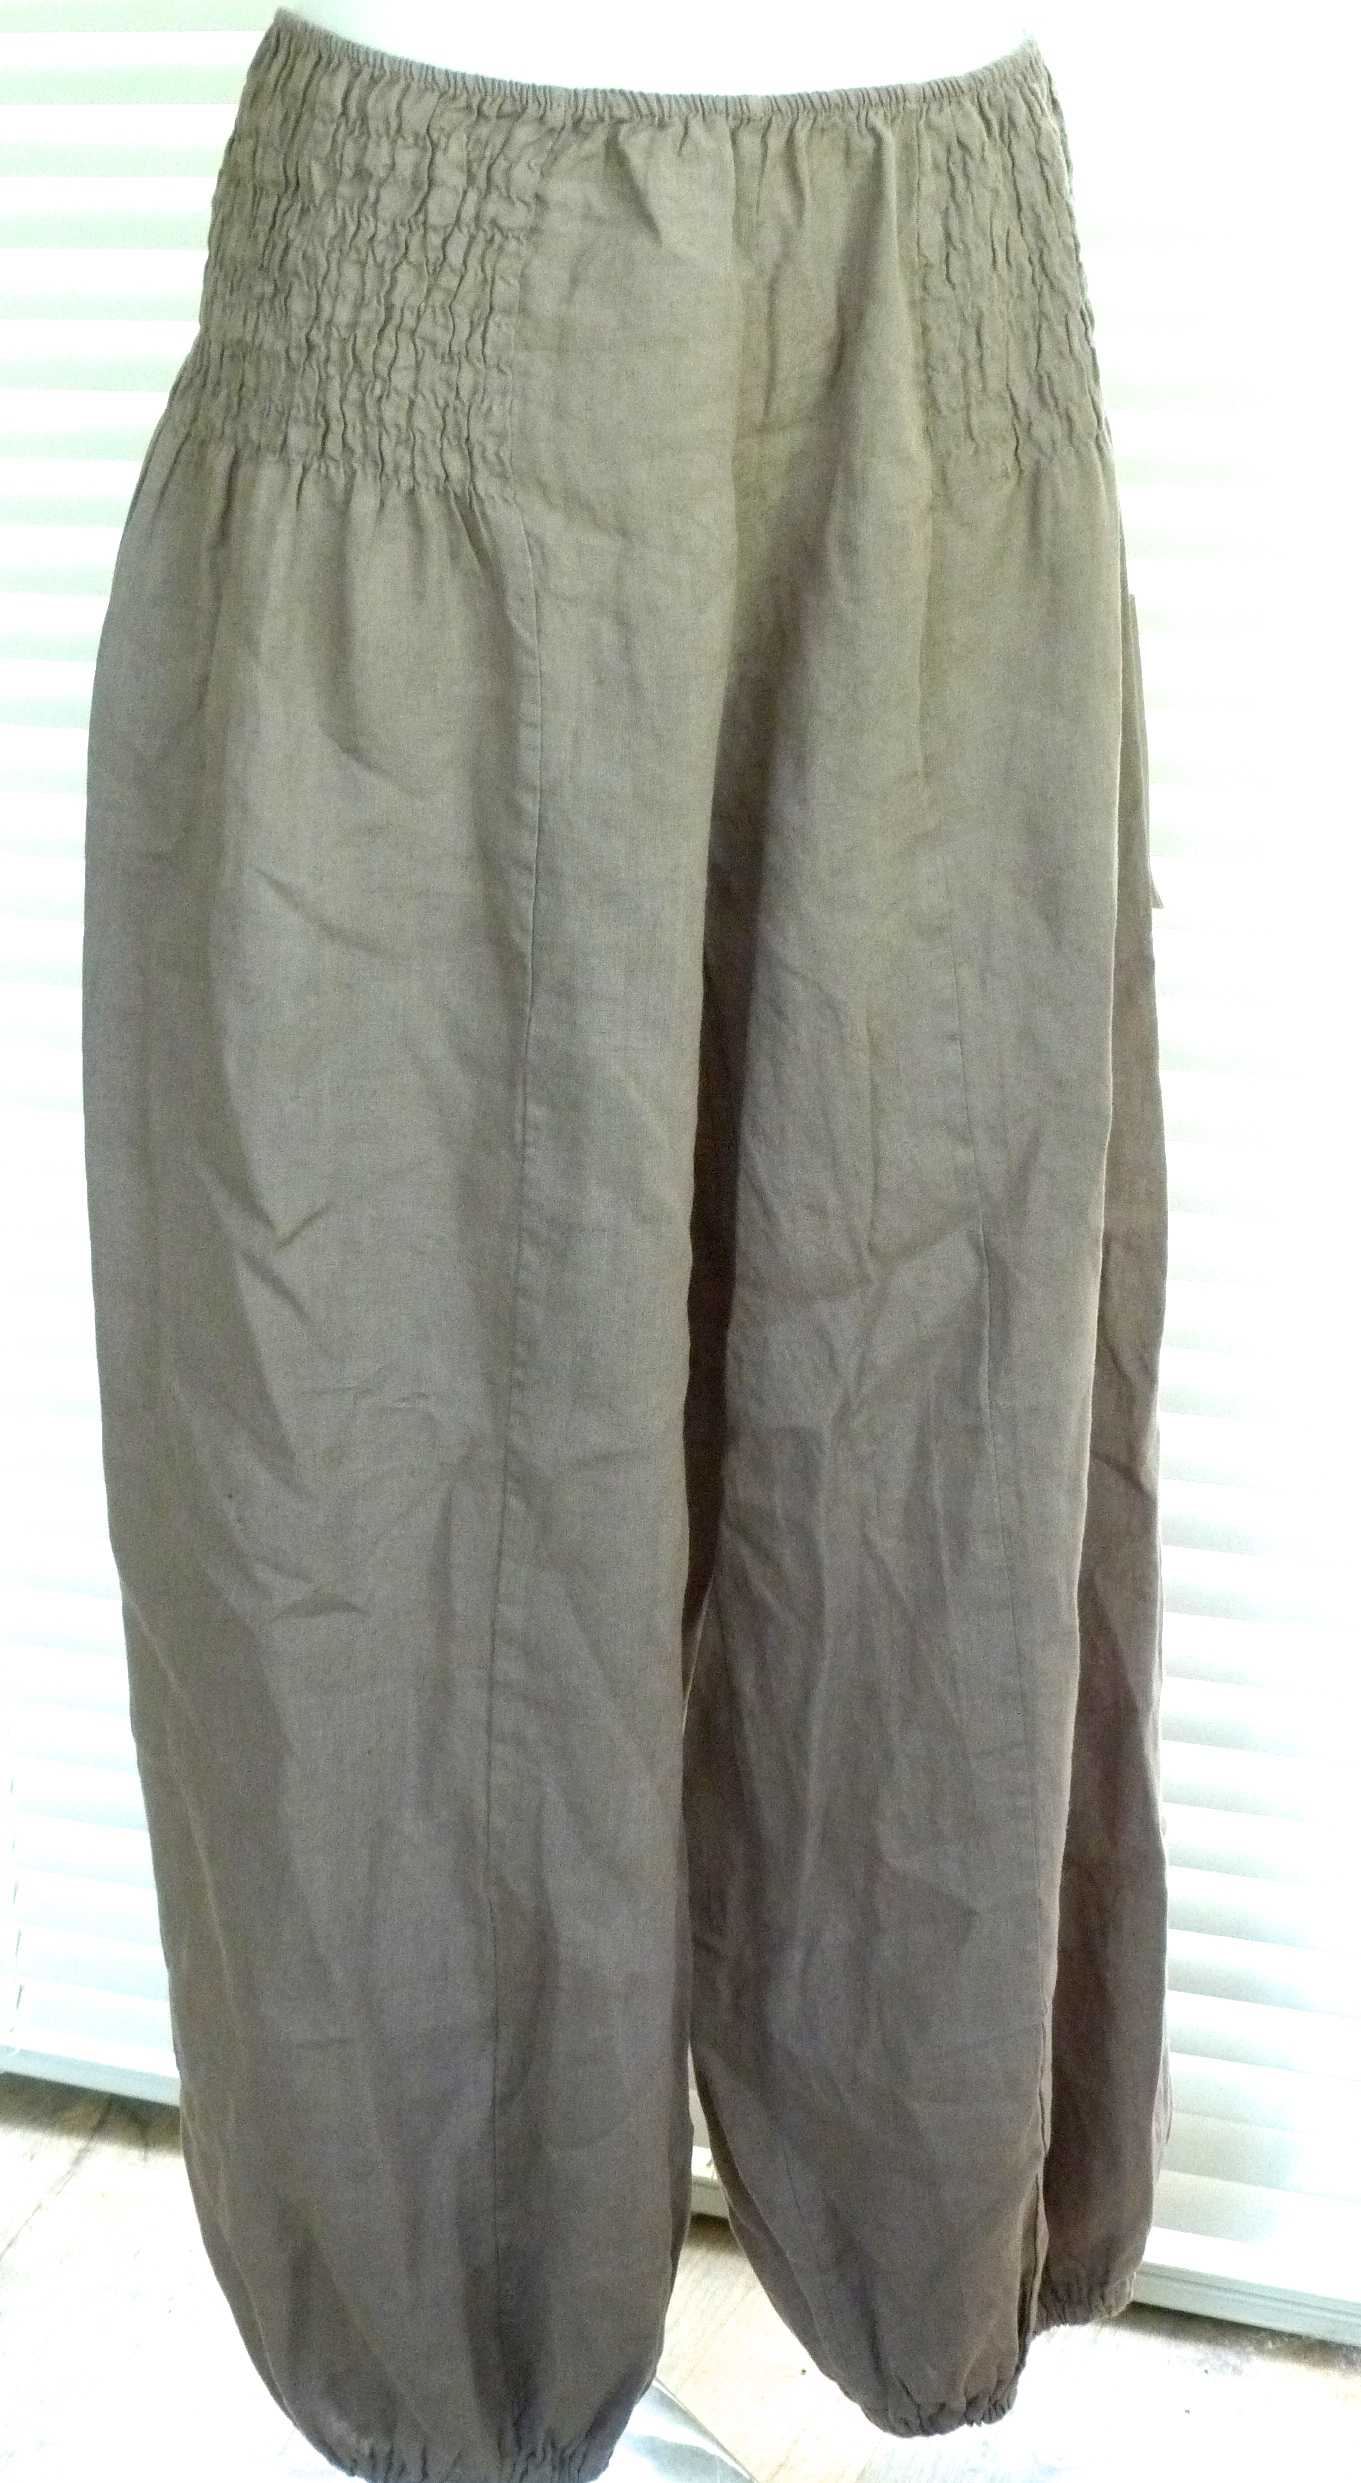 Get the best deals on linen harem pants and save up to 70% off at Poshmark now! Whatever you're shopping for, we've got it.